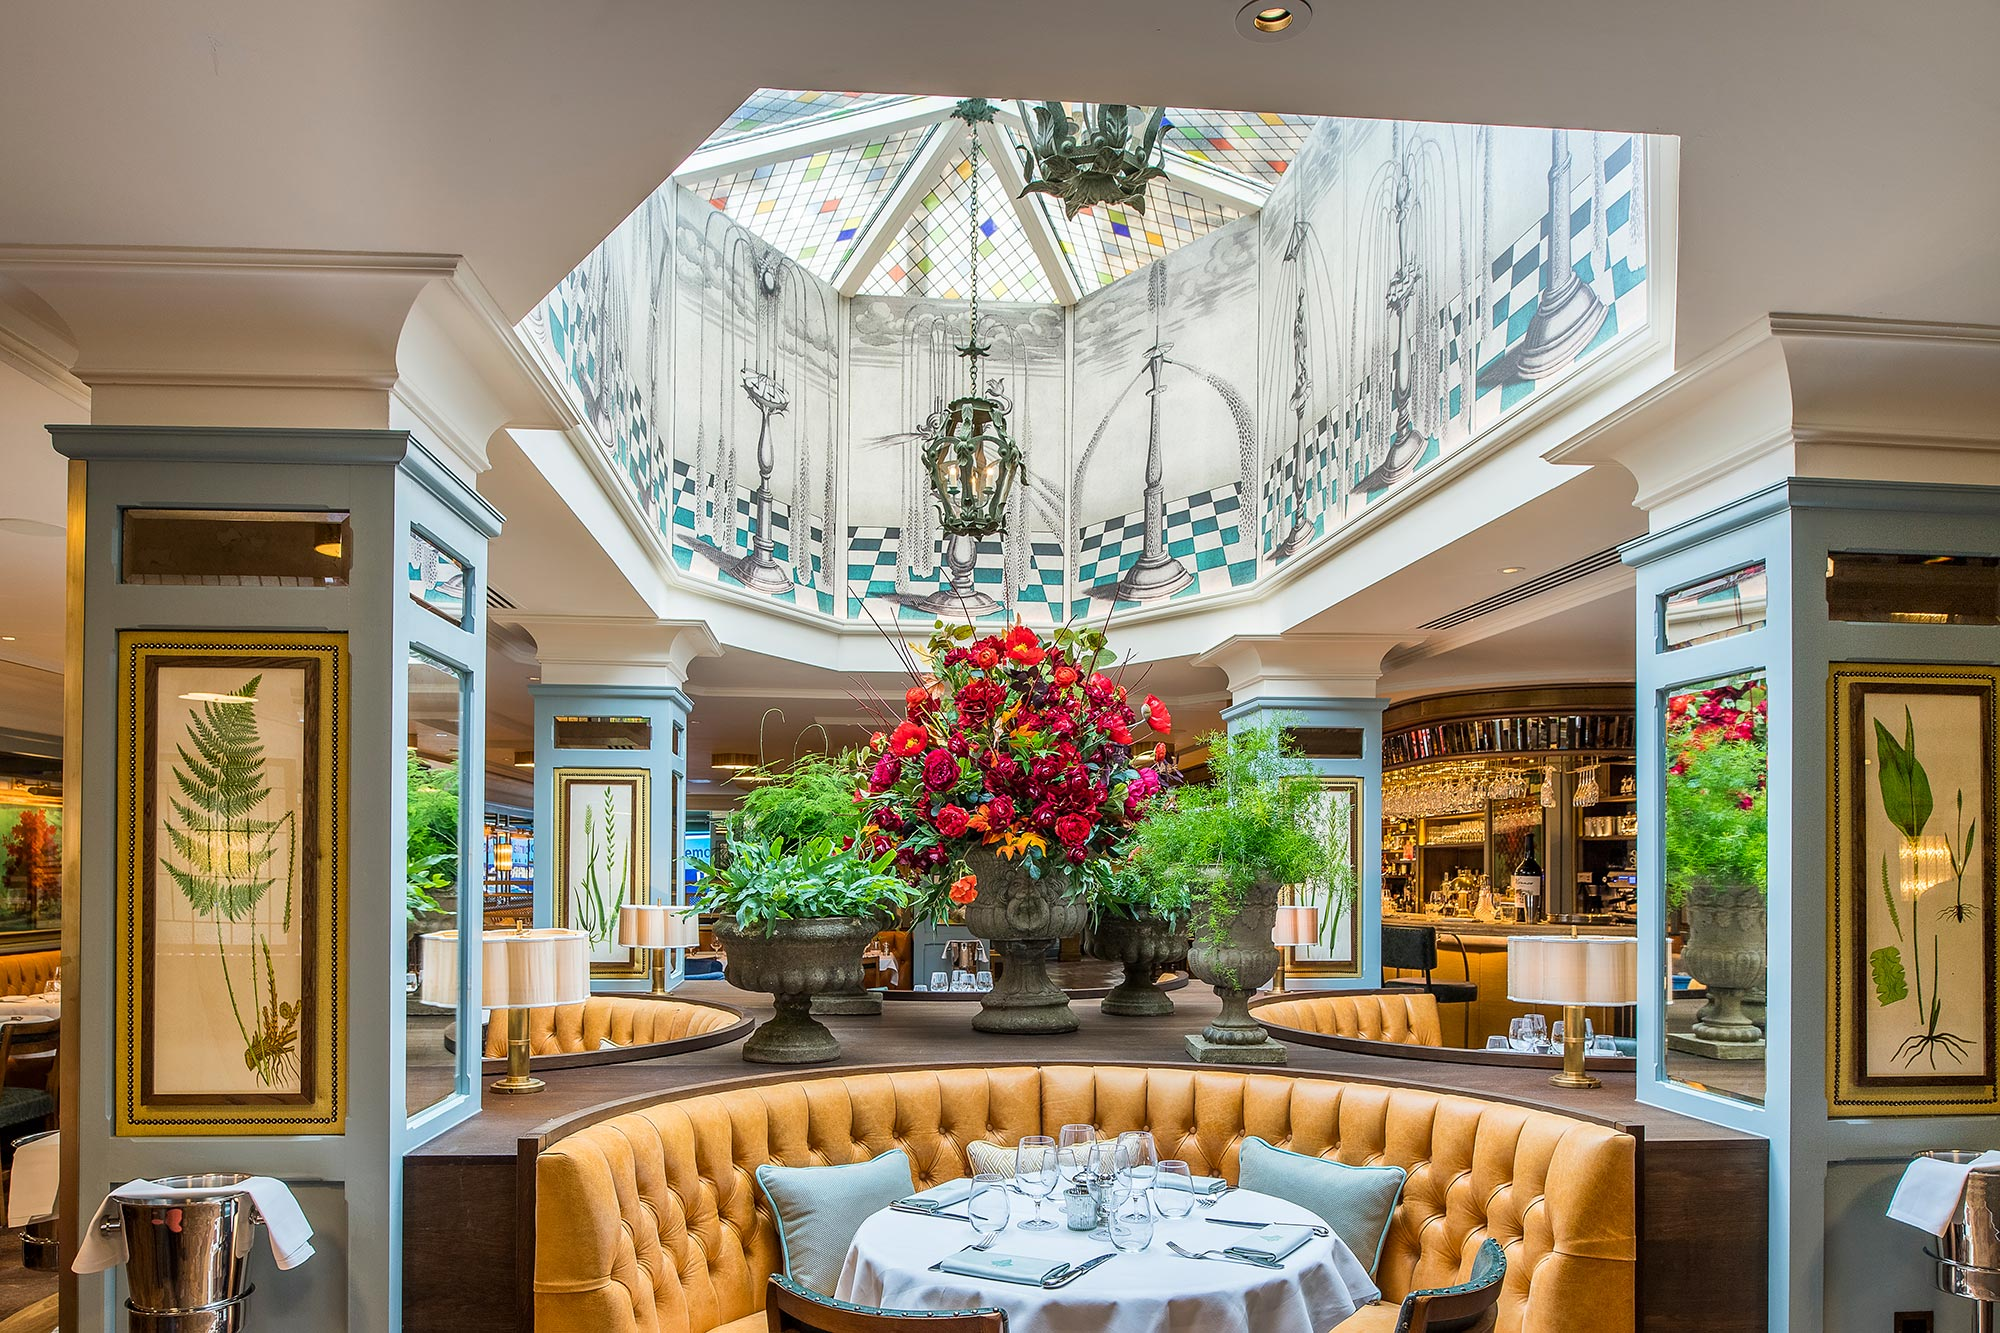 Eating out in Harrogate - The Ivy Harrogate Brasserie - The Ivy Harrogate